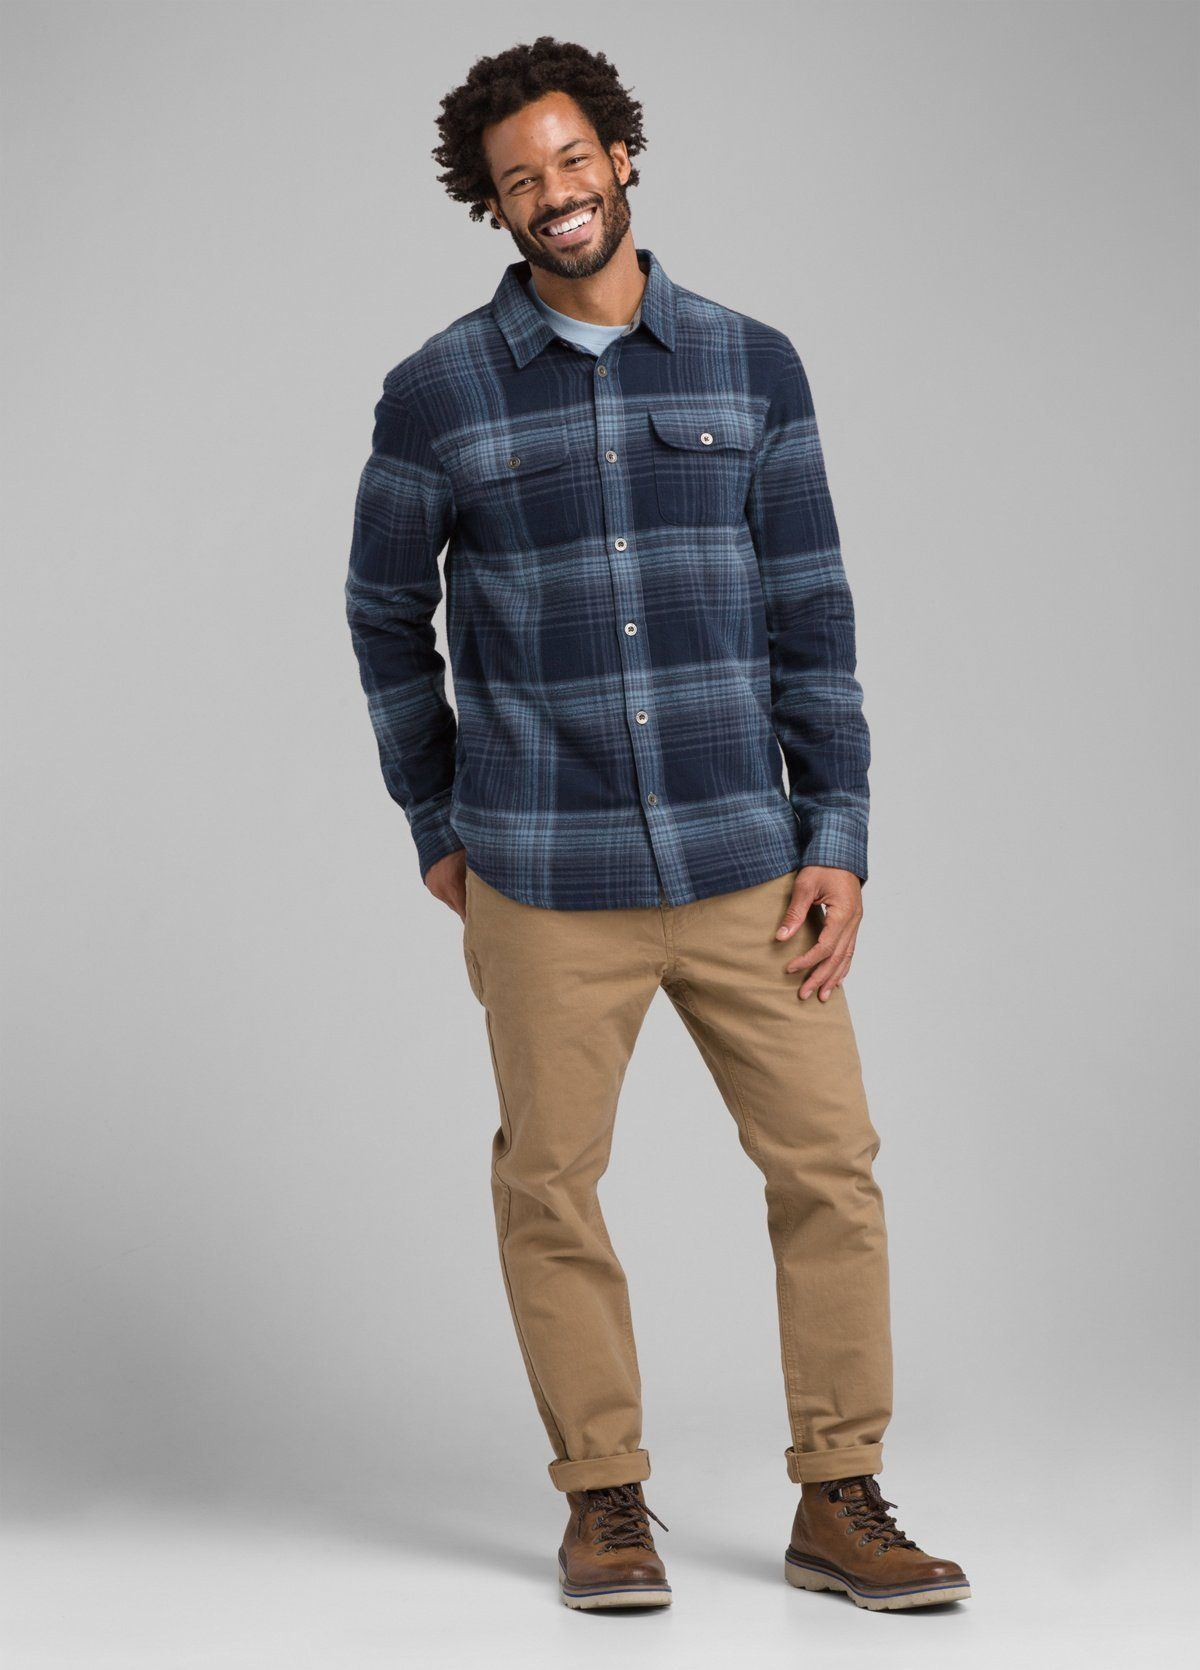 PrAna - Men's Lybek Midweight Flannel - Organic Cotton - Weekendbee - sustainable sportswear